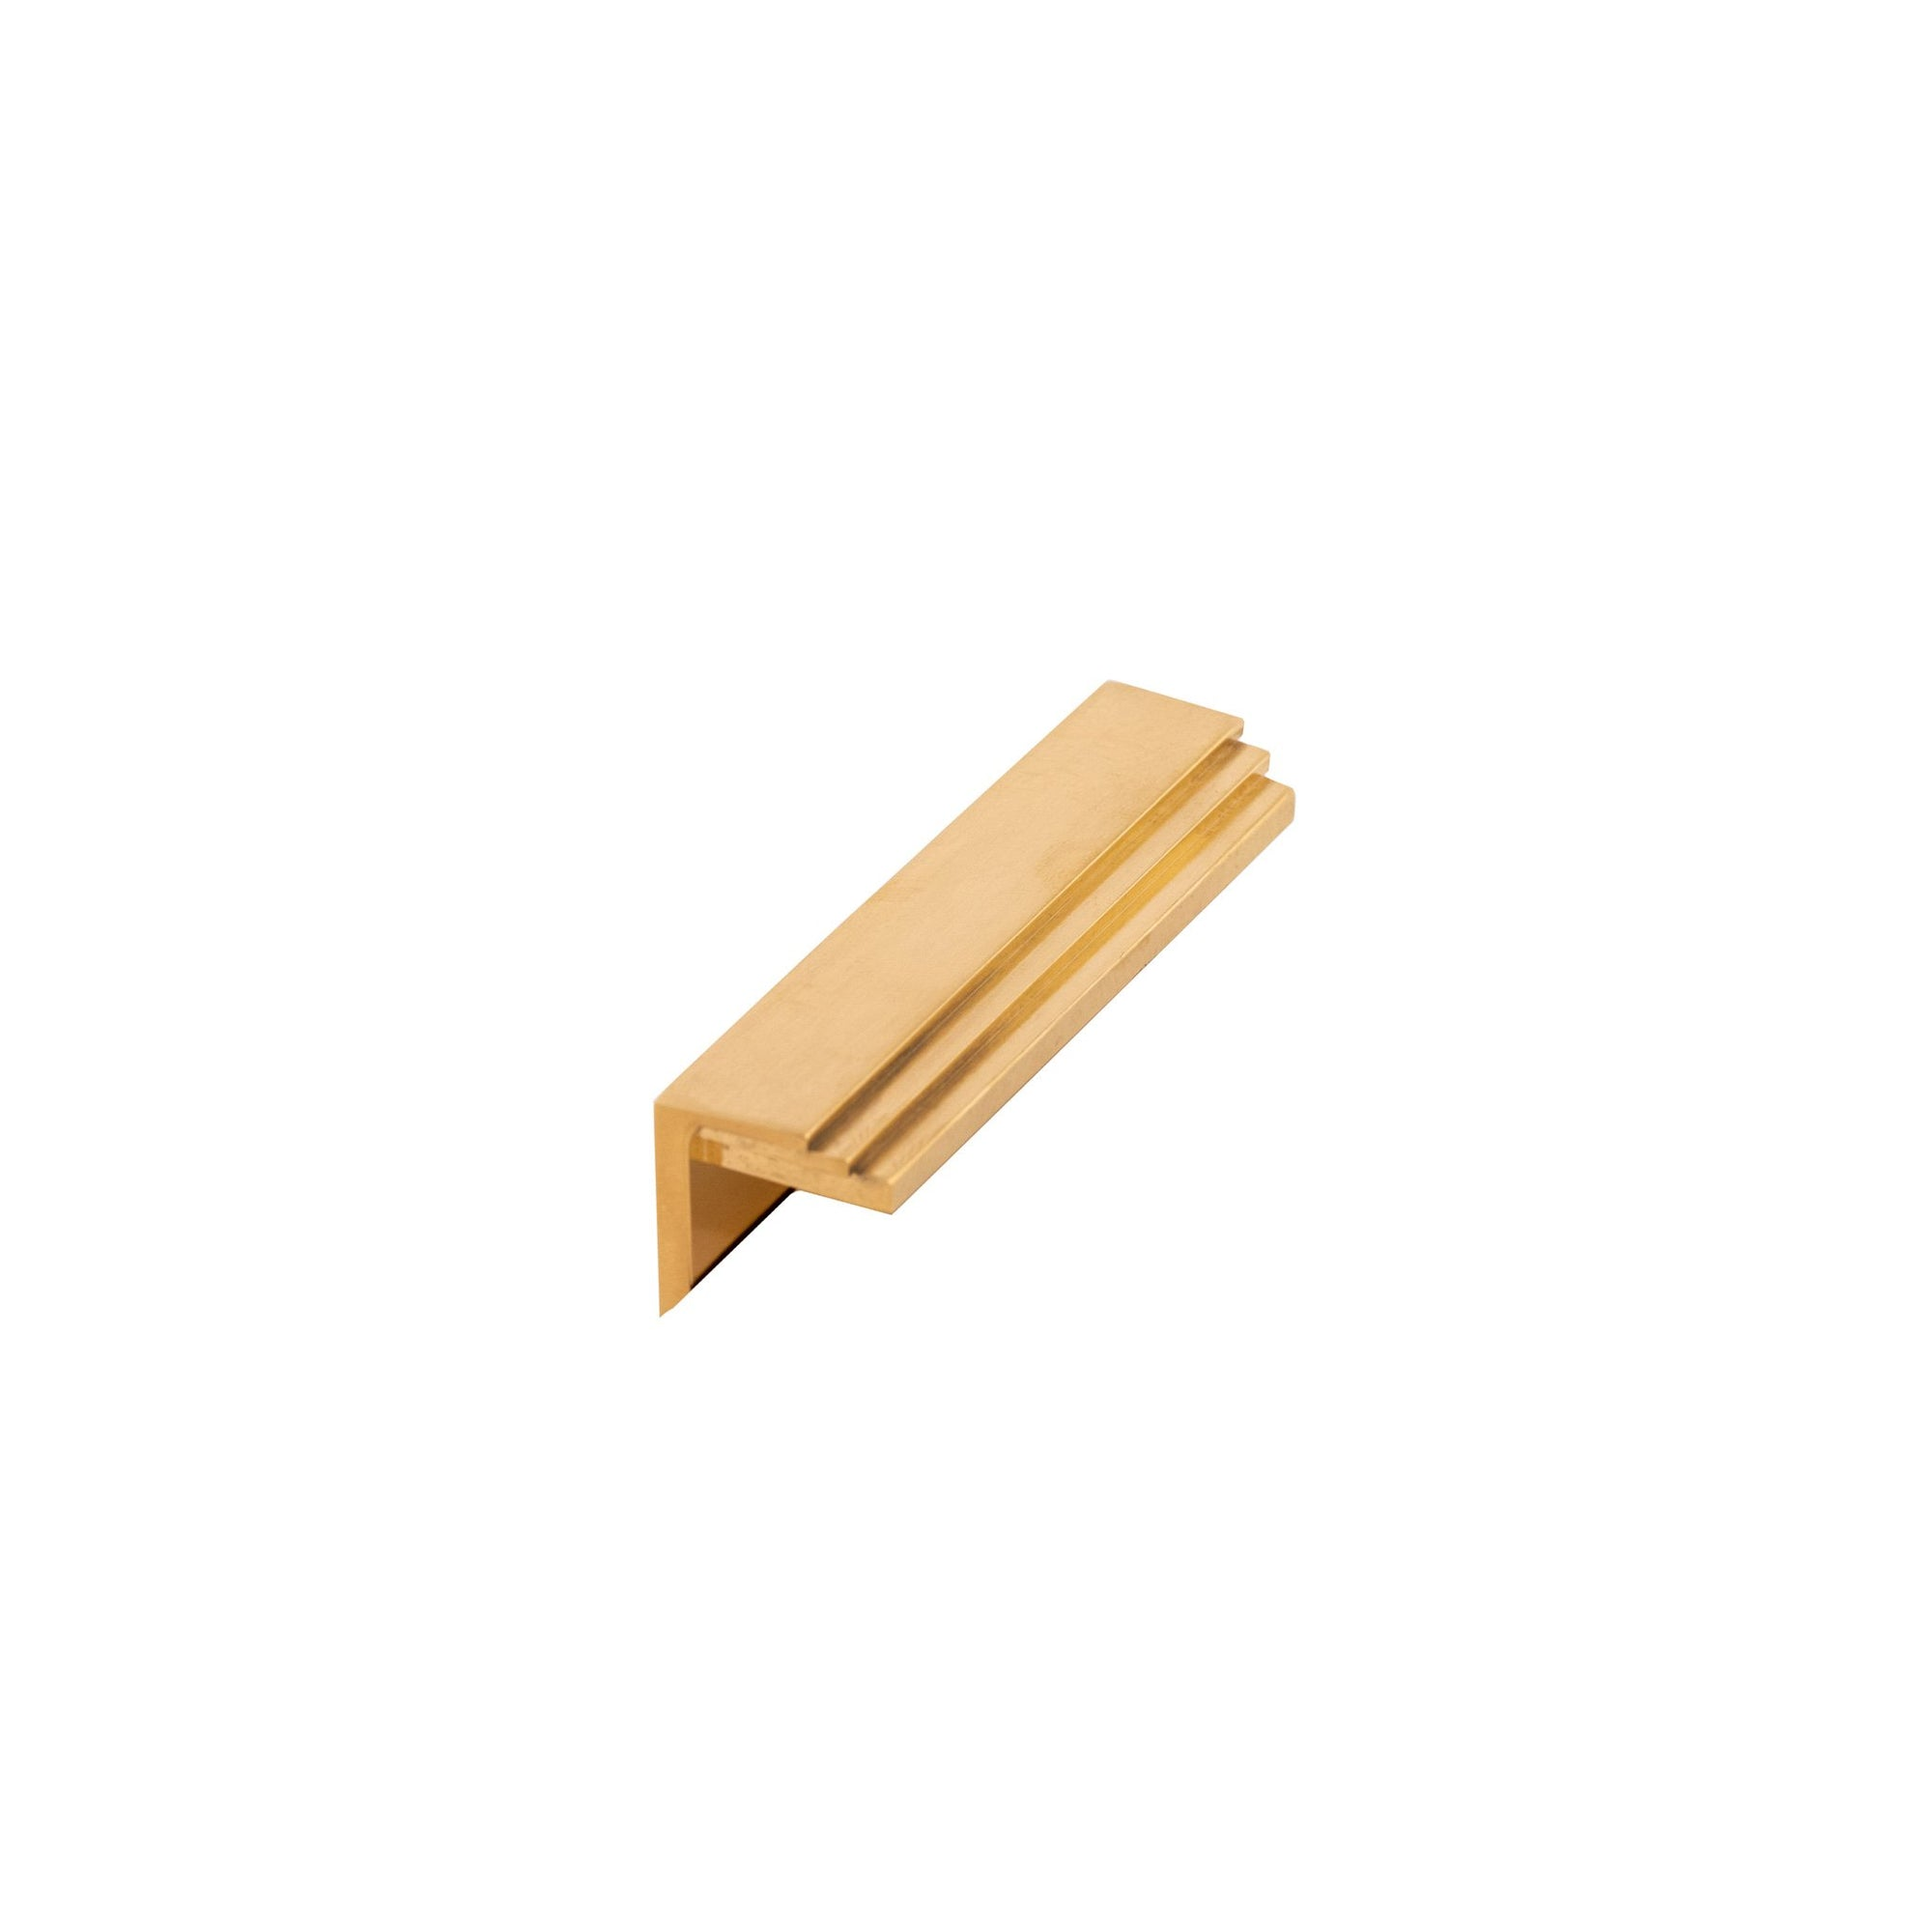 2060-EDPL-300S-BG Sherle Wagner International Keystone Edge Pull in Burnished Gold metal finish